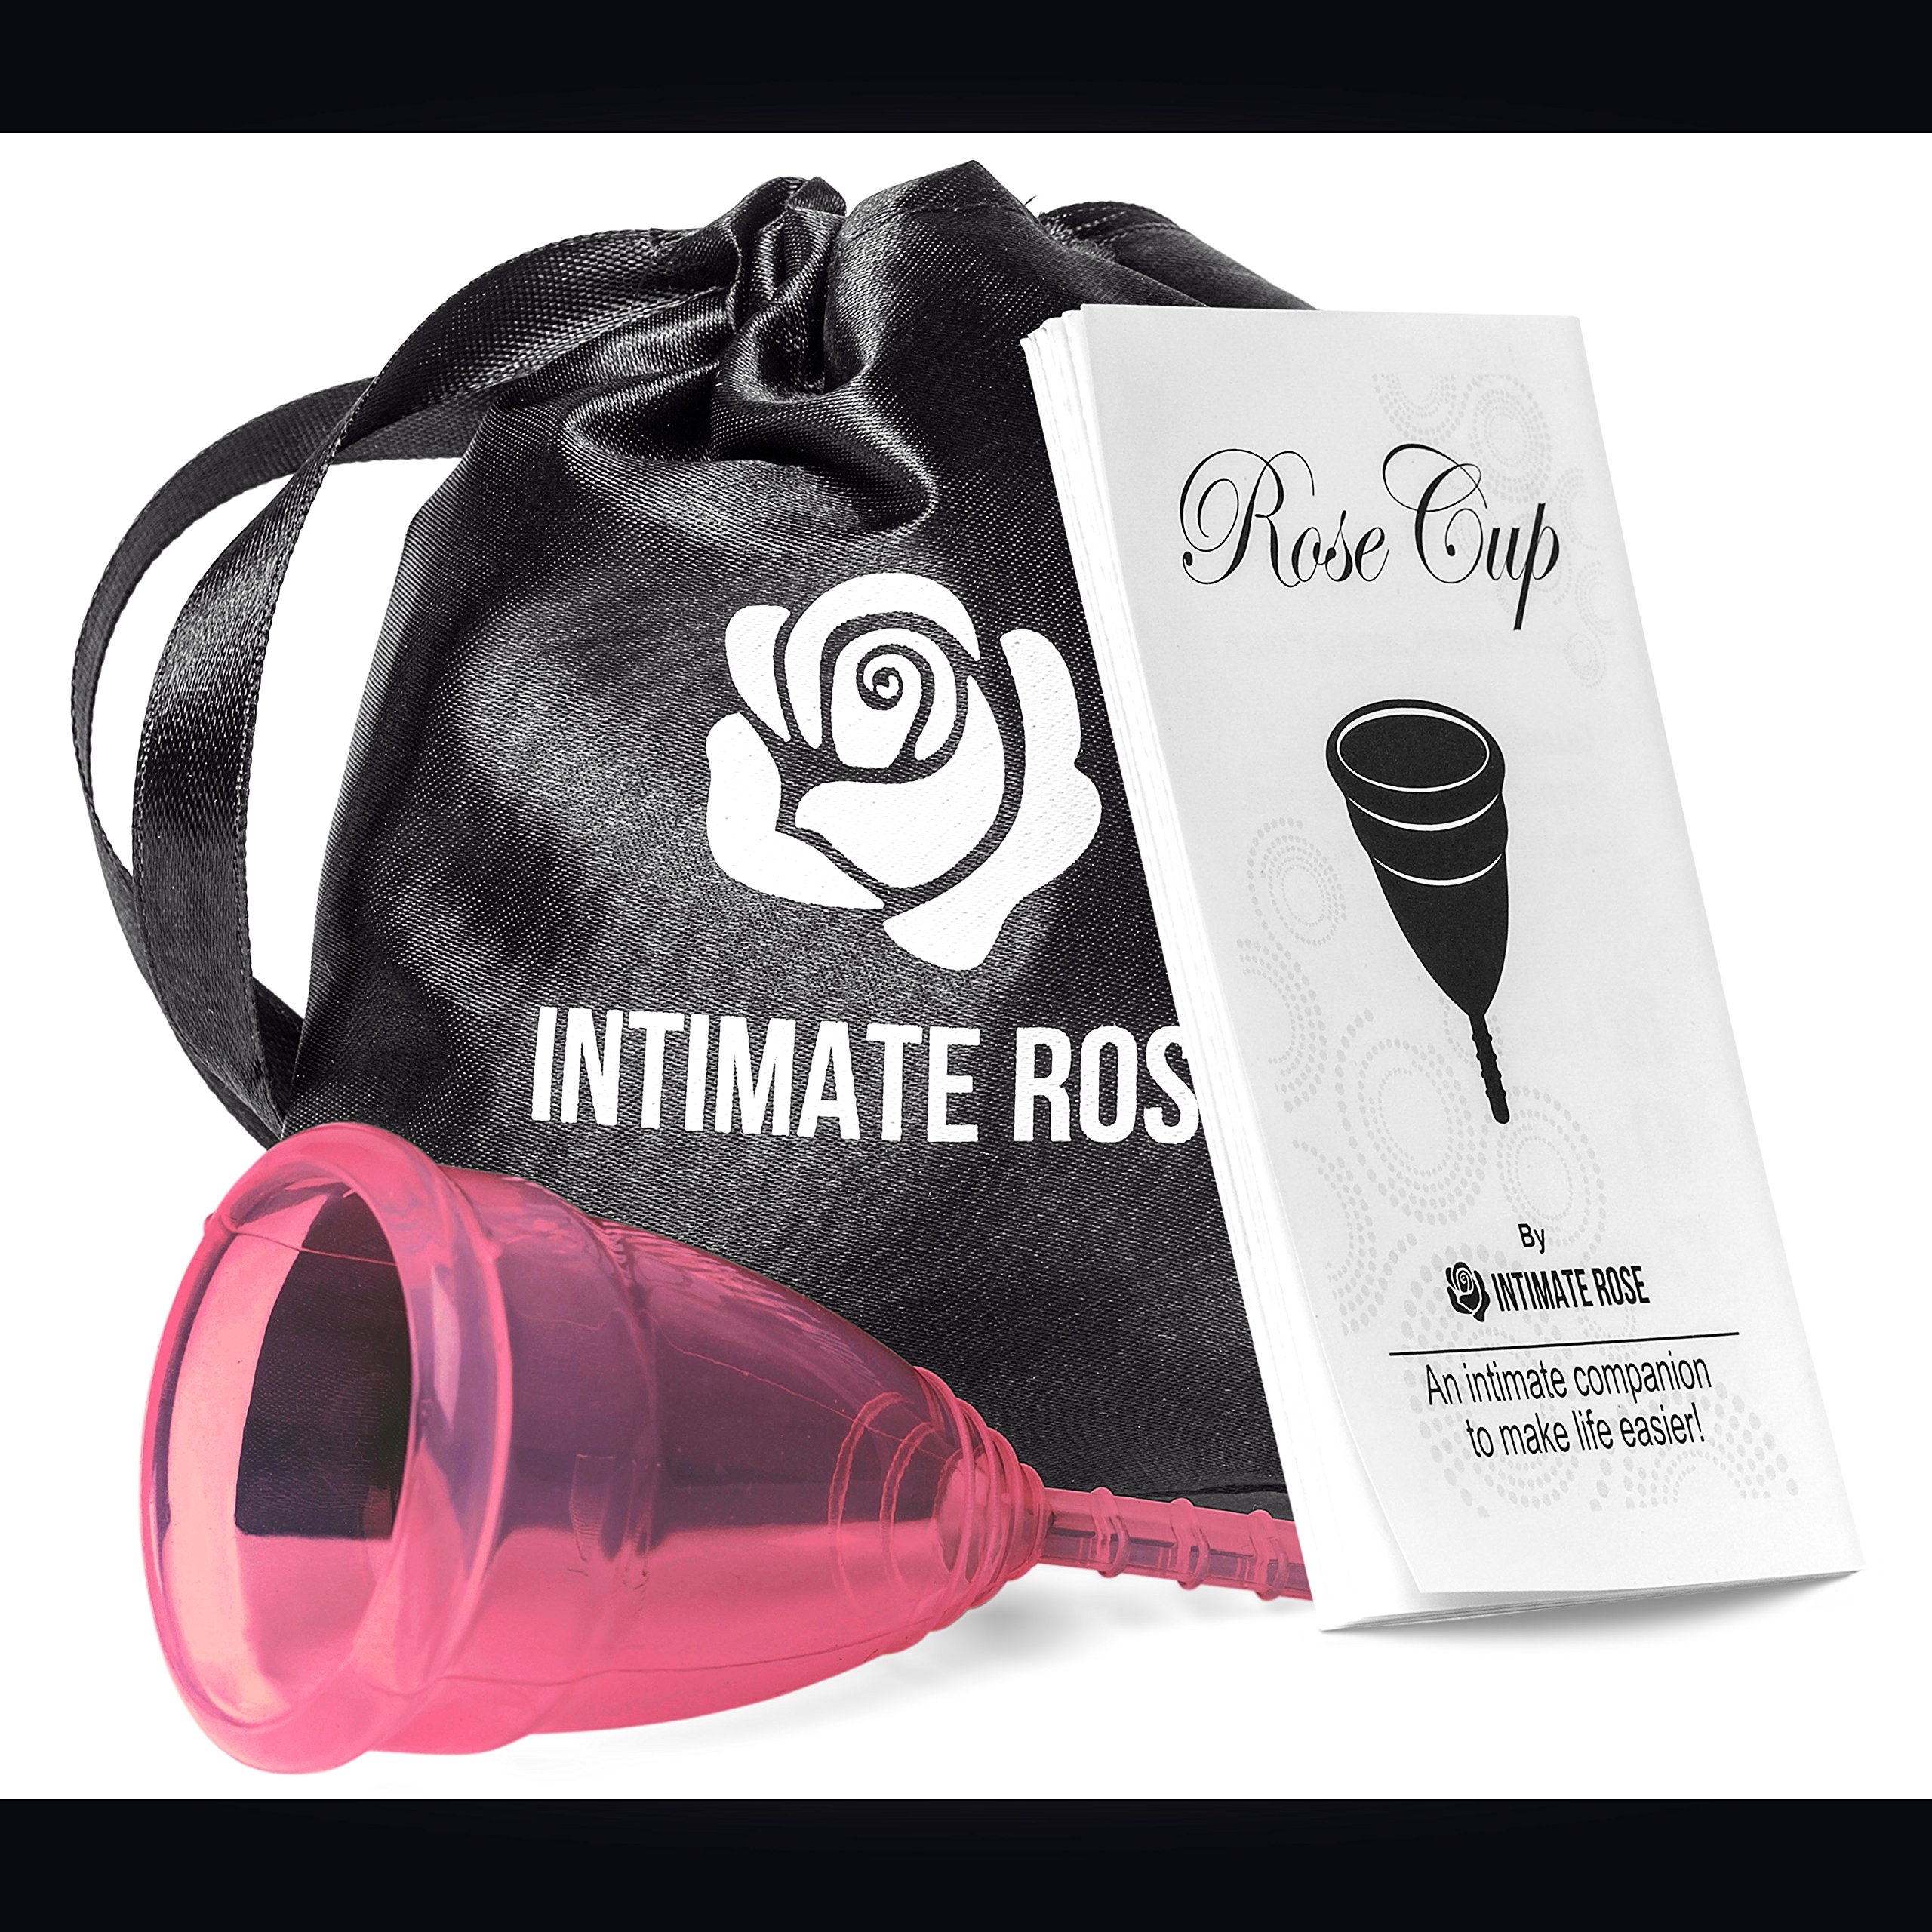 Intimate Rose Menstrual Cup Is Perfect For Beginners - 12 Hour Period Protection With FDA Approved Silicone - More Comfortable Option - Eco-Friendly Alternative to Tampons & Pads